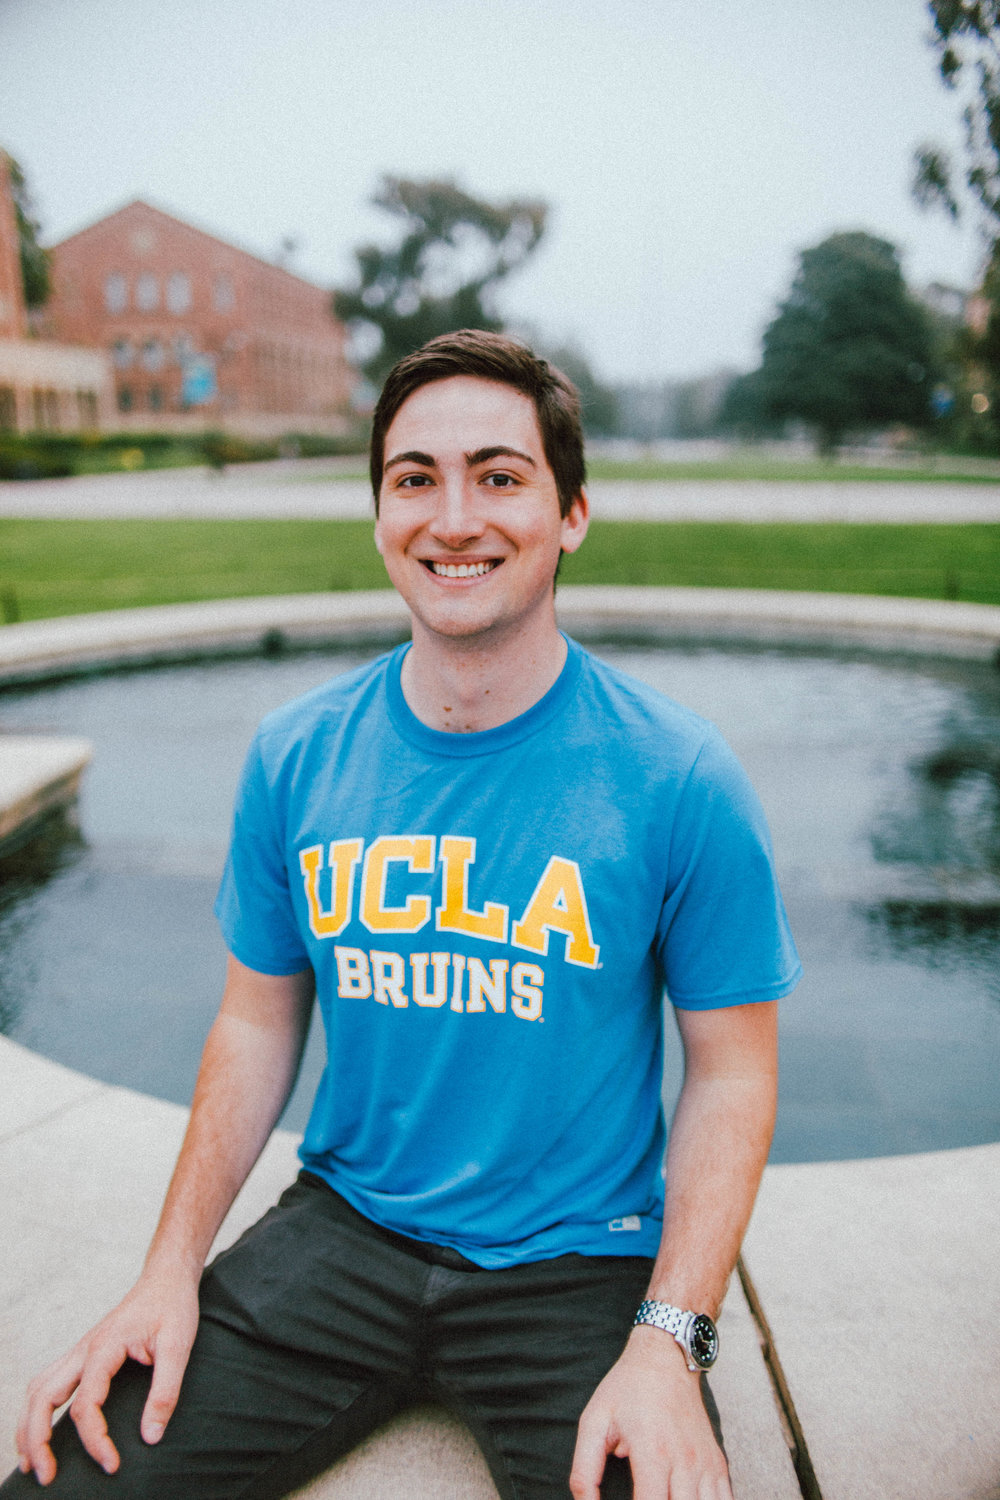 Brock Bauer - Undergraduate Student Appointee, UCLA Steering Committee for Online Teaching and LearningStudent Board Member, UCLA WASC Accreditation CommitteeBruins Breaking Bread Program Director, USAC Office of The PresidentExecutive Board Member, Bruin Real Estate Association